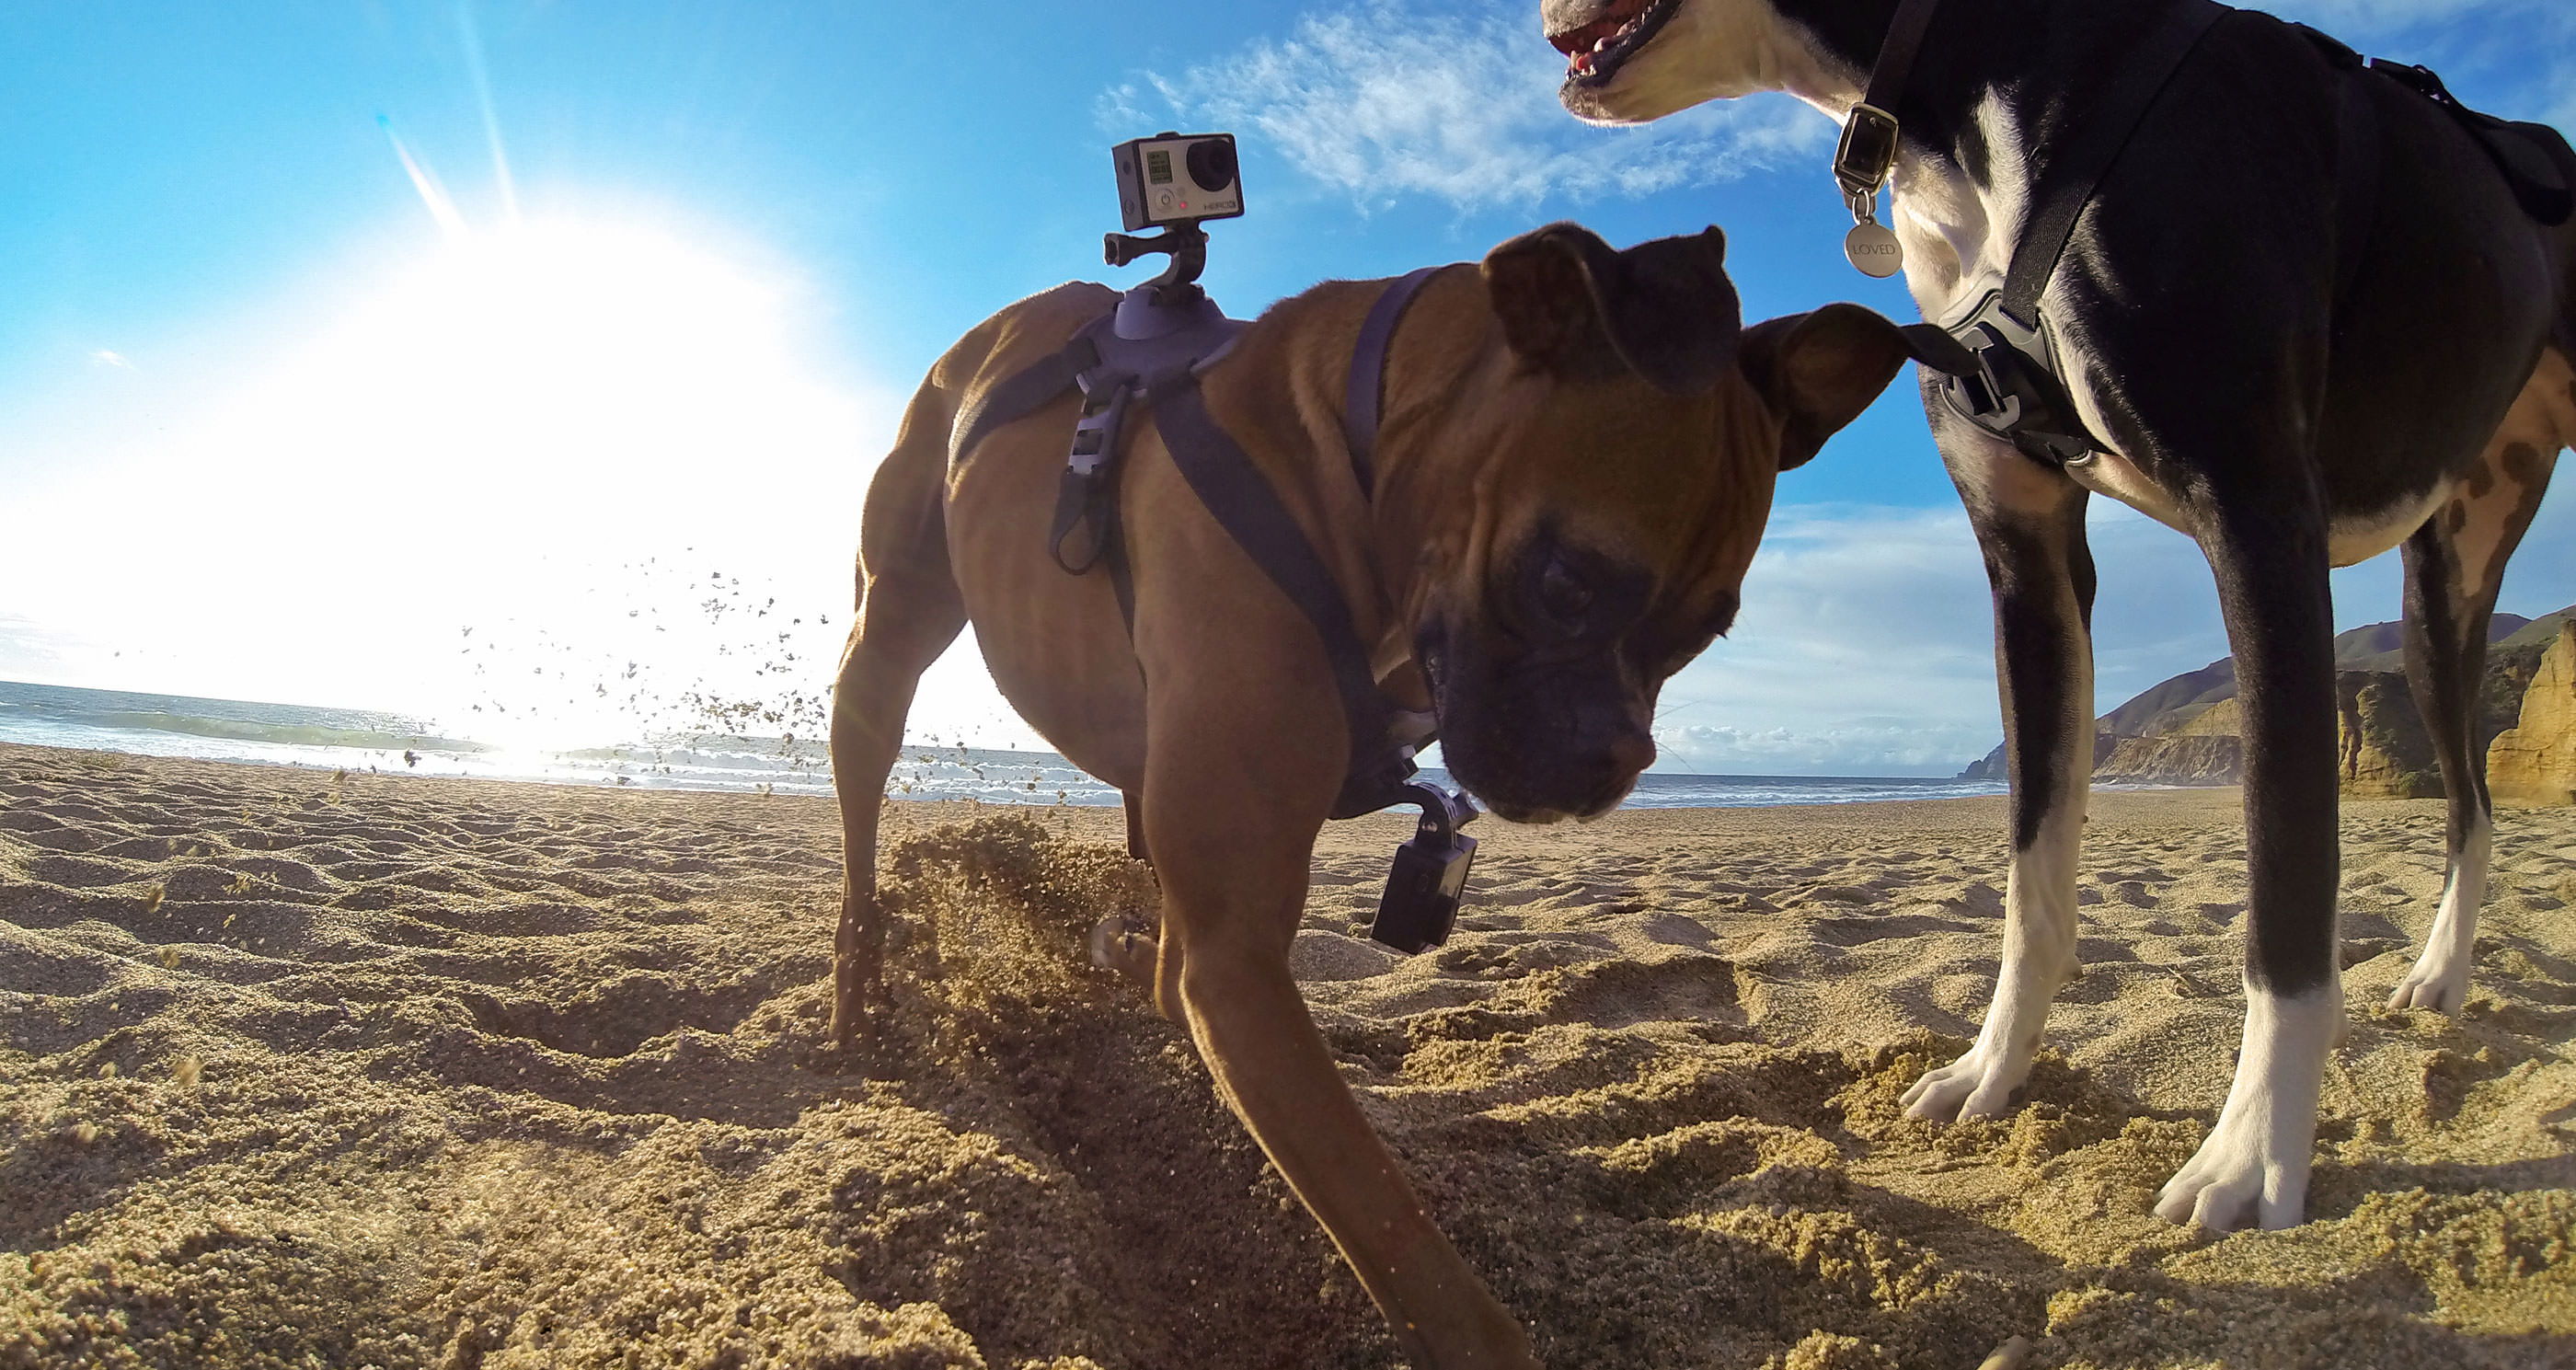 More GoPro cuts send shares flying, but analysts aren't buying it